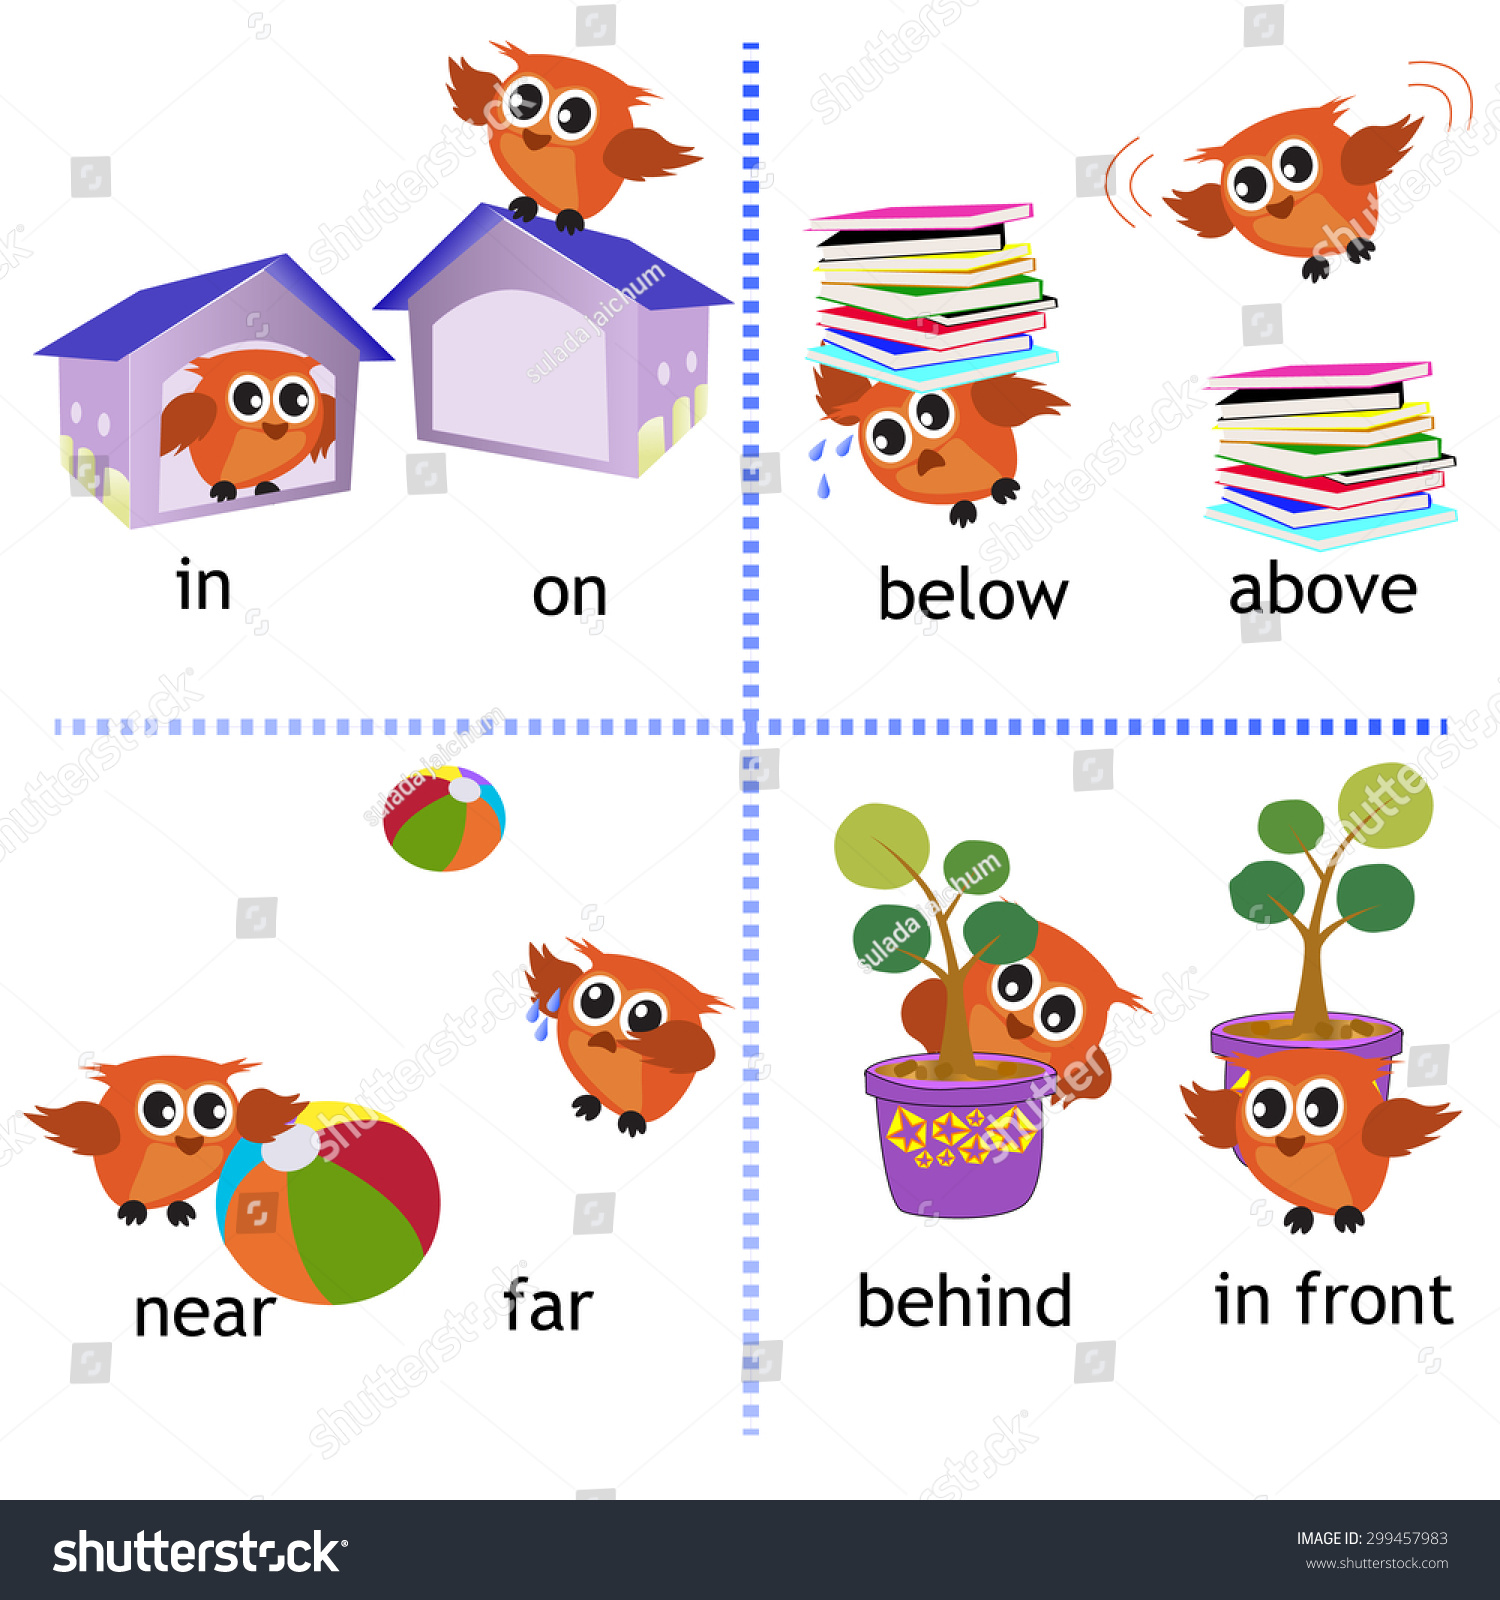 Prepositions Clip Art Below Cliparts